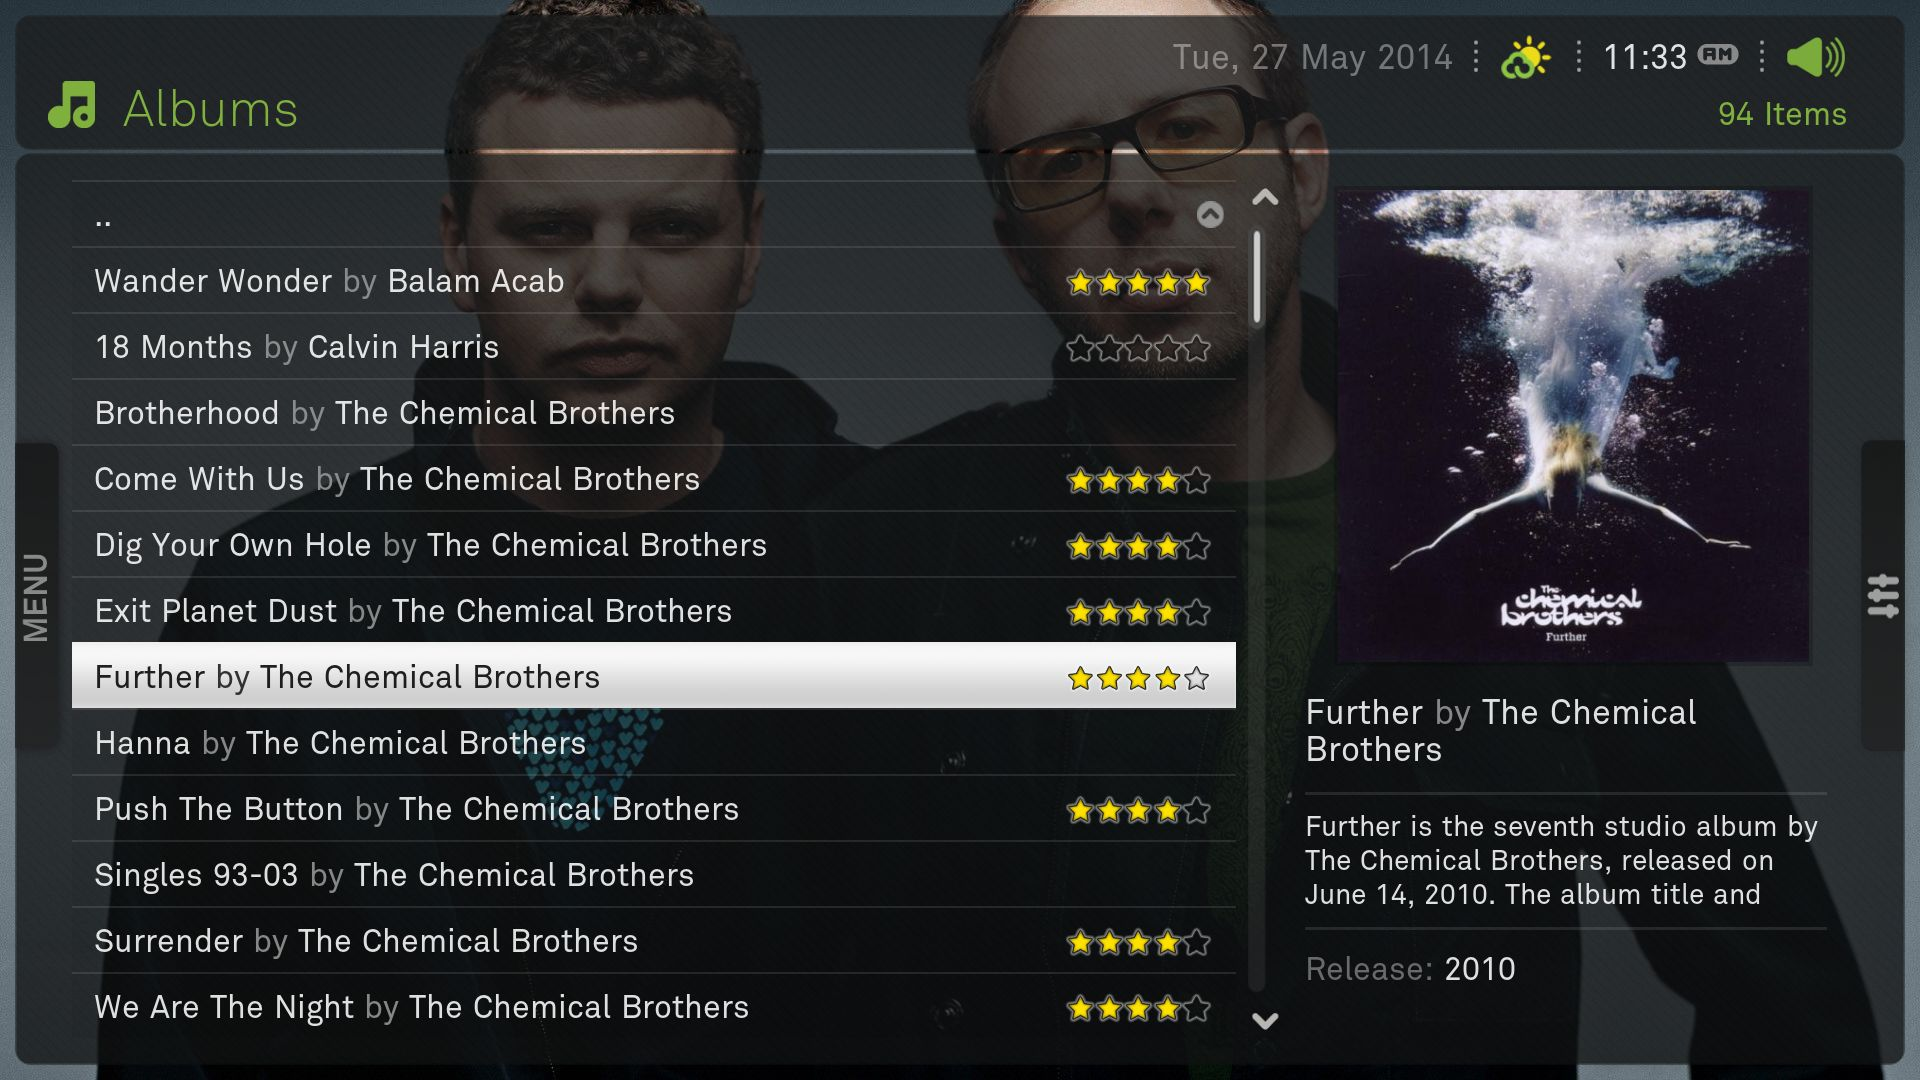 Kodi/XBMC skin: XeeBo by Hitcher